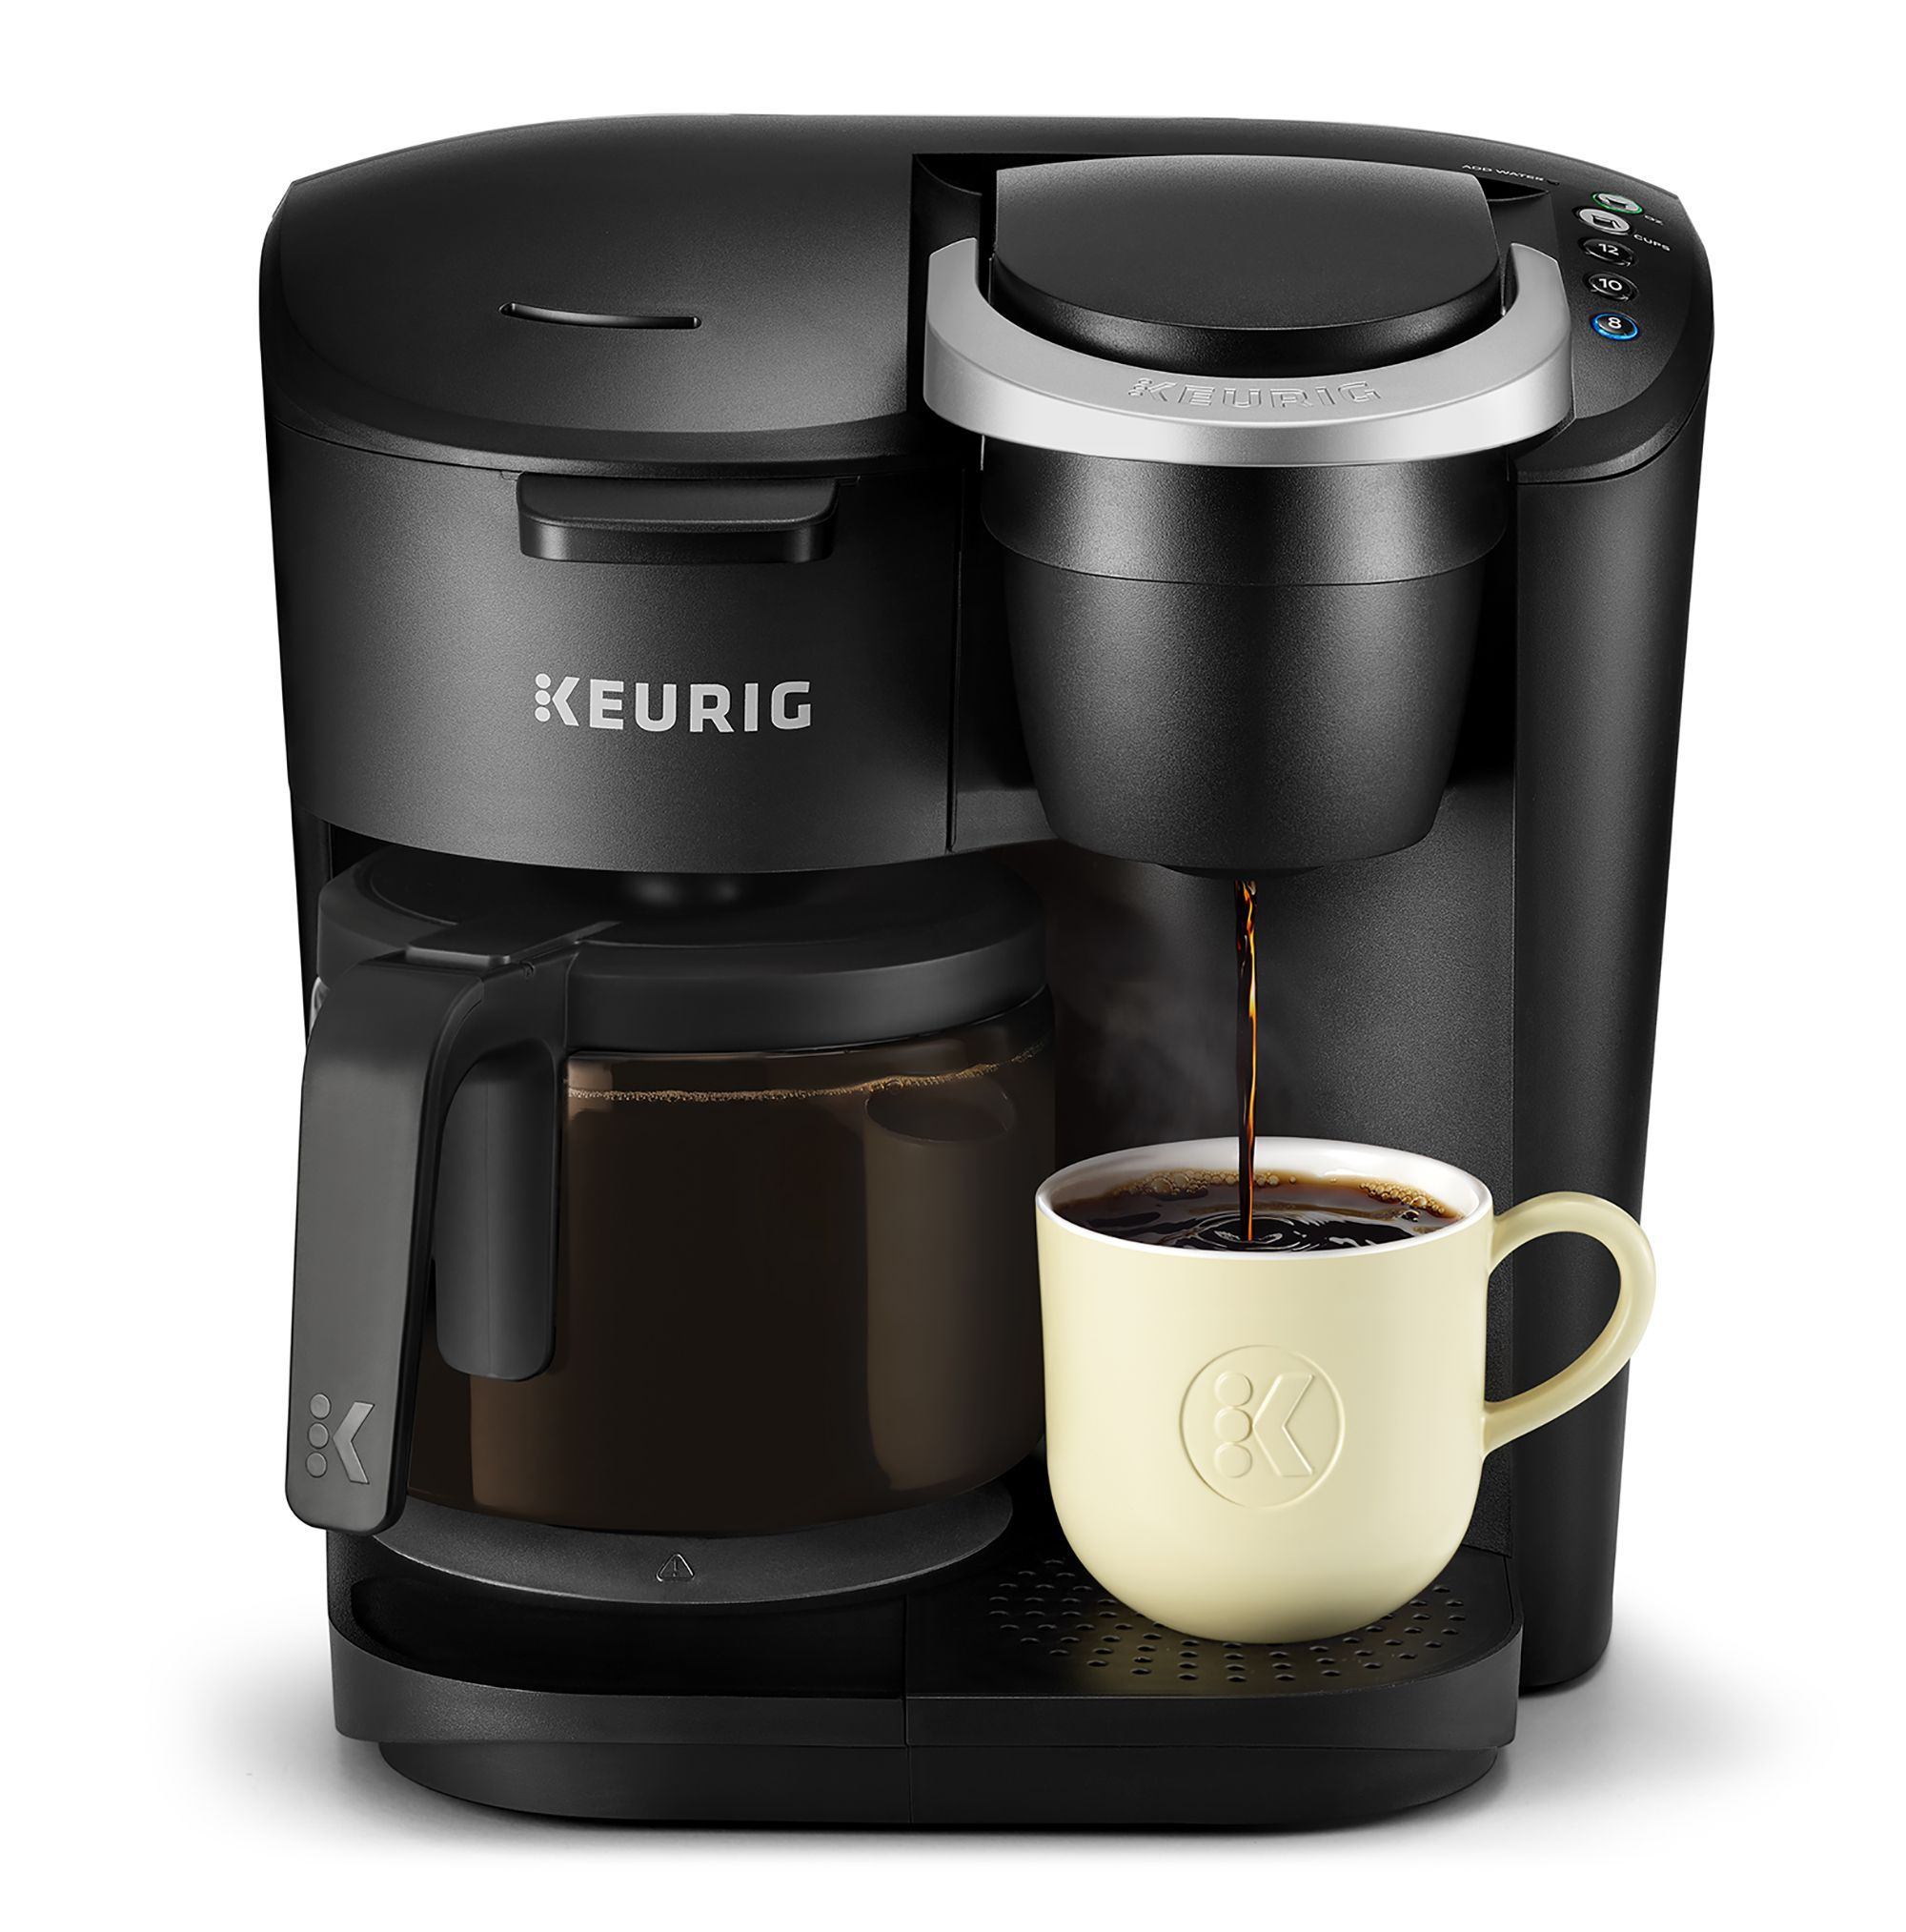 Keurig K Duo Essentials Coffee Maker With Single Serve K Cup Pod And 12 Cup Carafe Brewer Black Single Coffee Maker Keurig Coffee Makers Best Coffee Maker